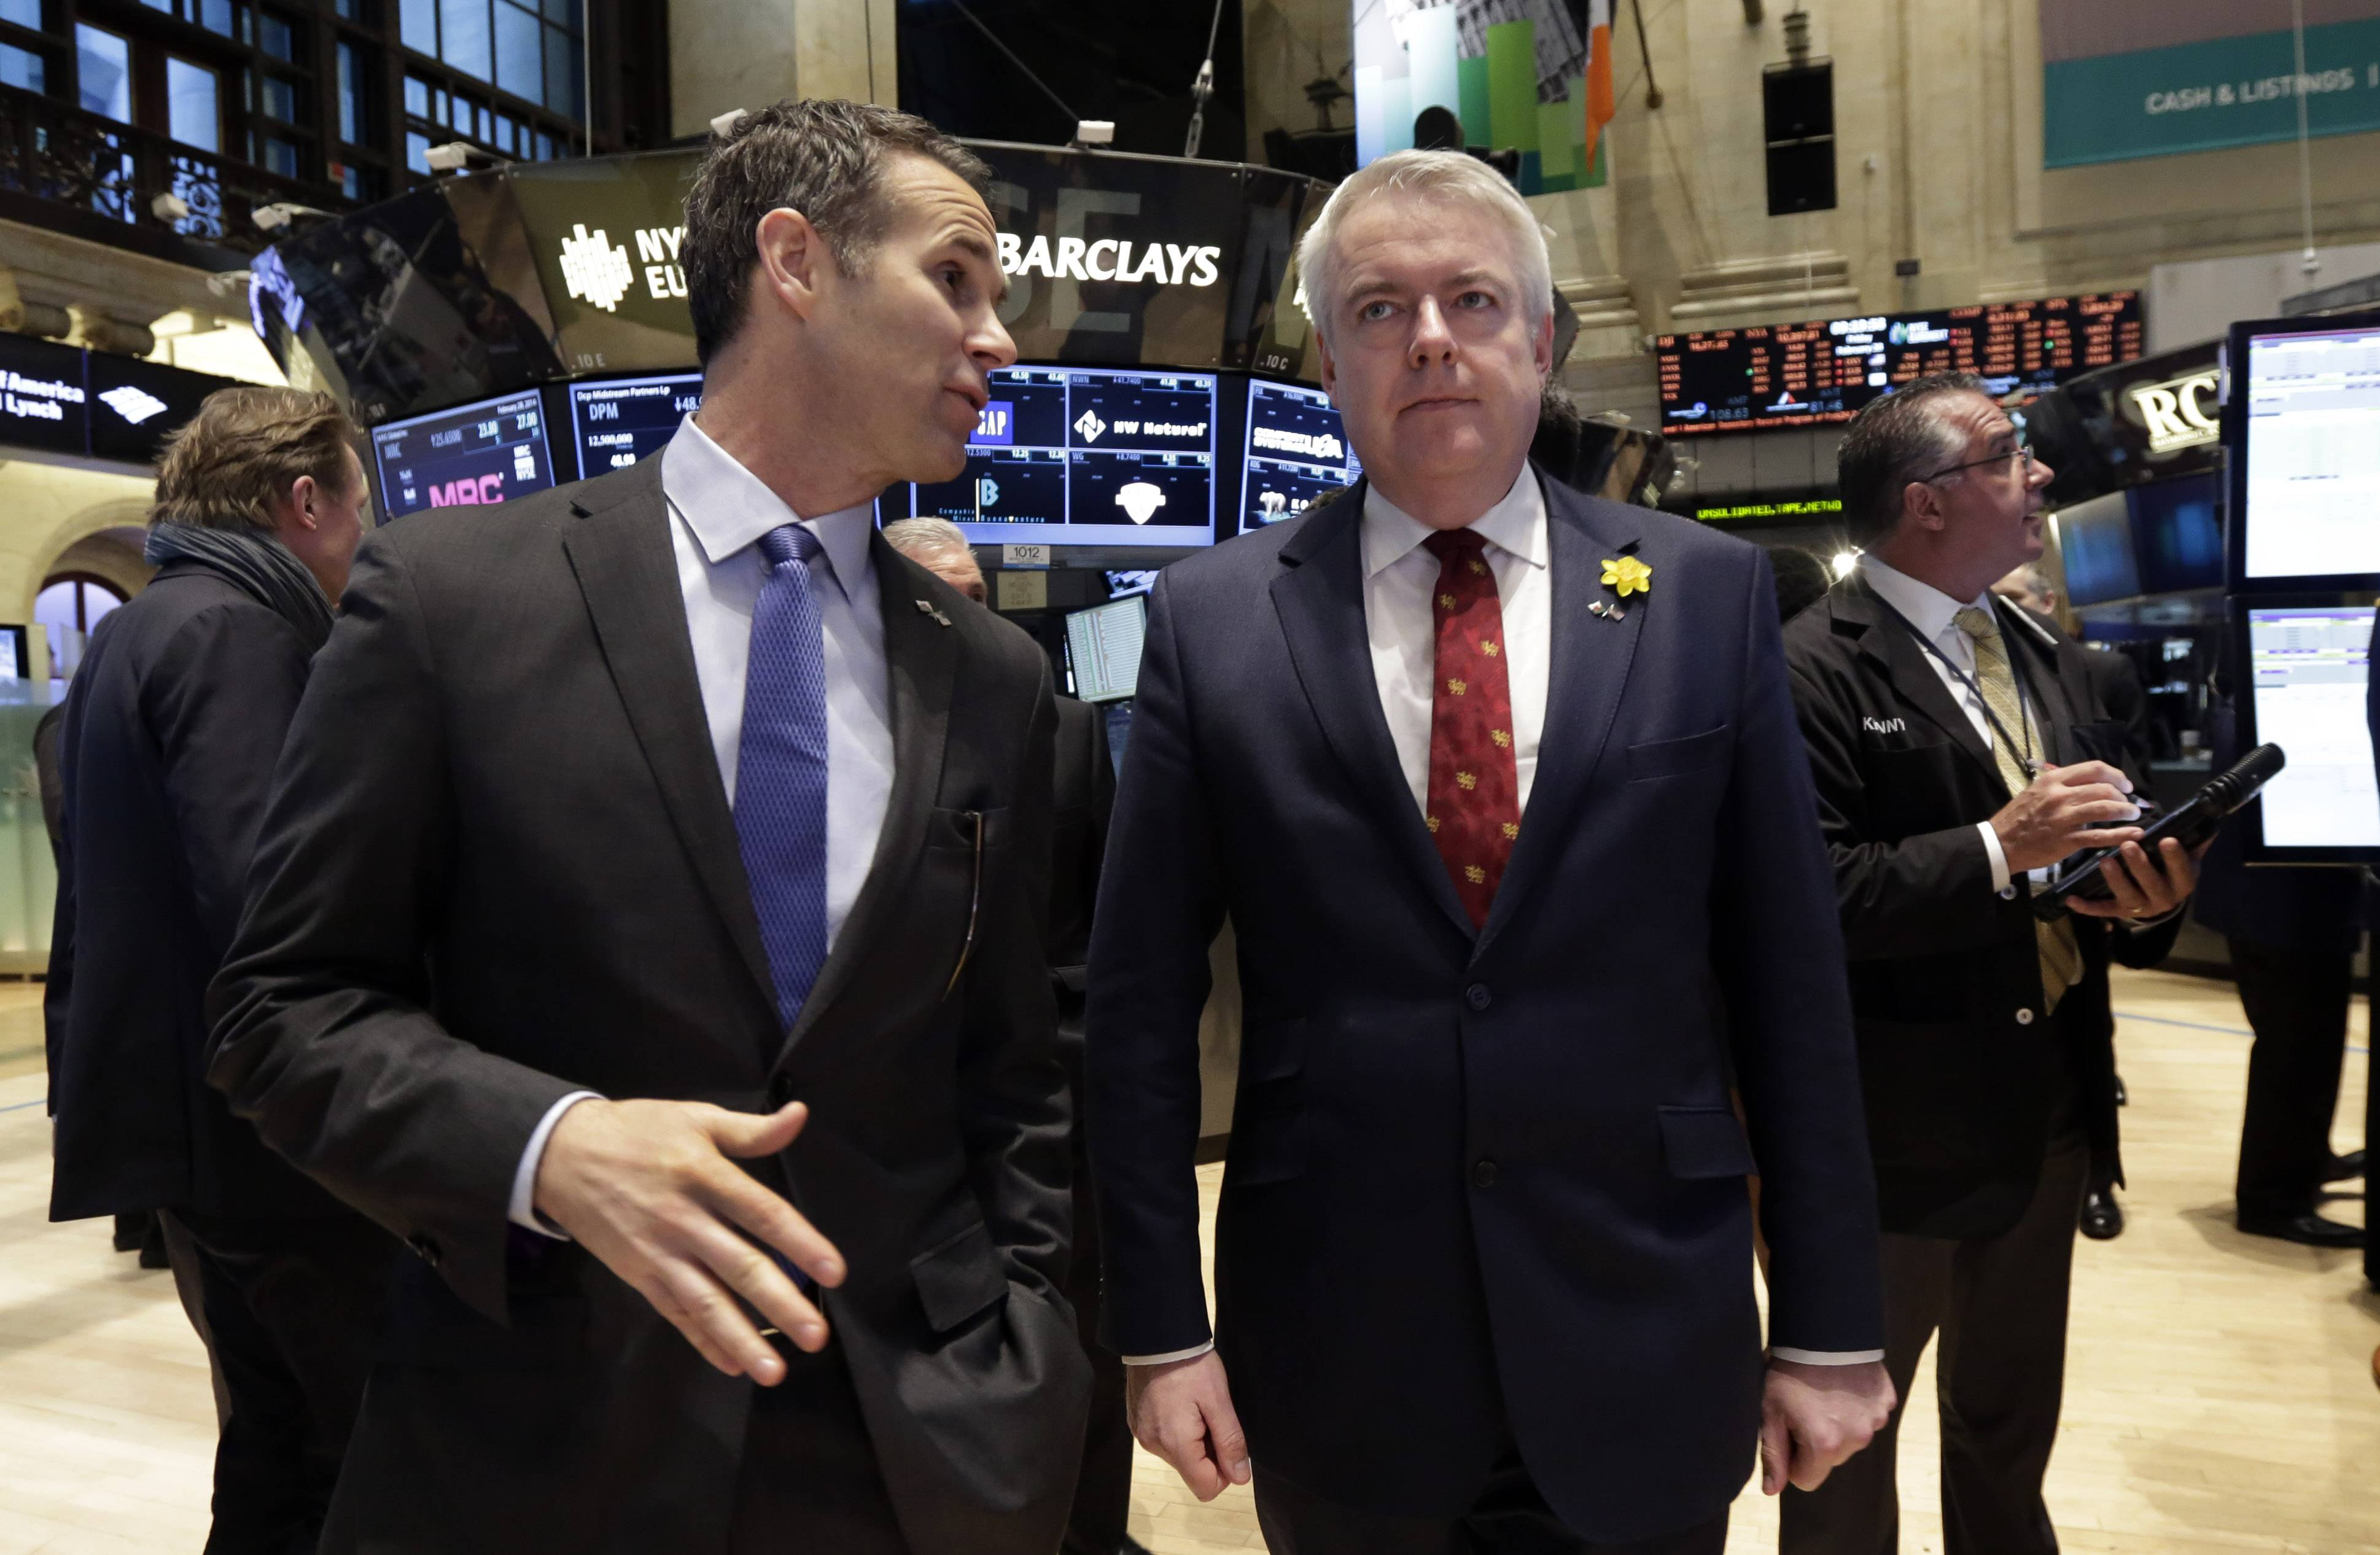 First Minister of the Welsh Government Carwyn Jones, right, visits the trading floor of the New York Stock Exchange Friday with NYSE Vice President Scott Cutler before ringing the opening bell.